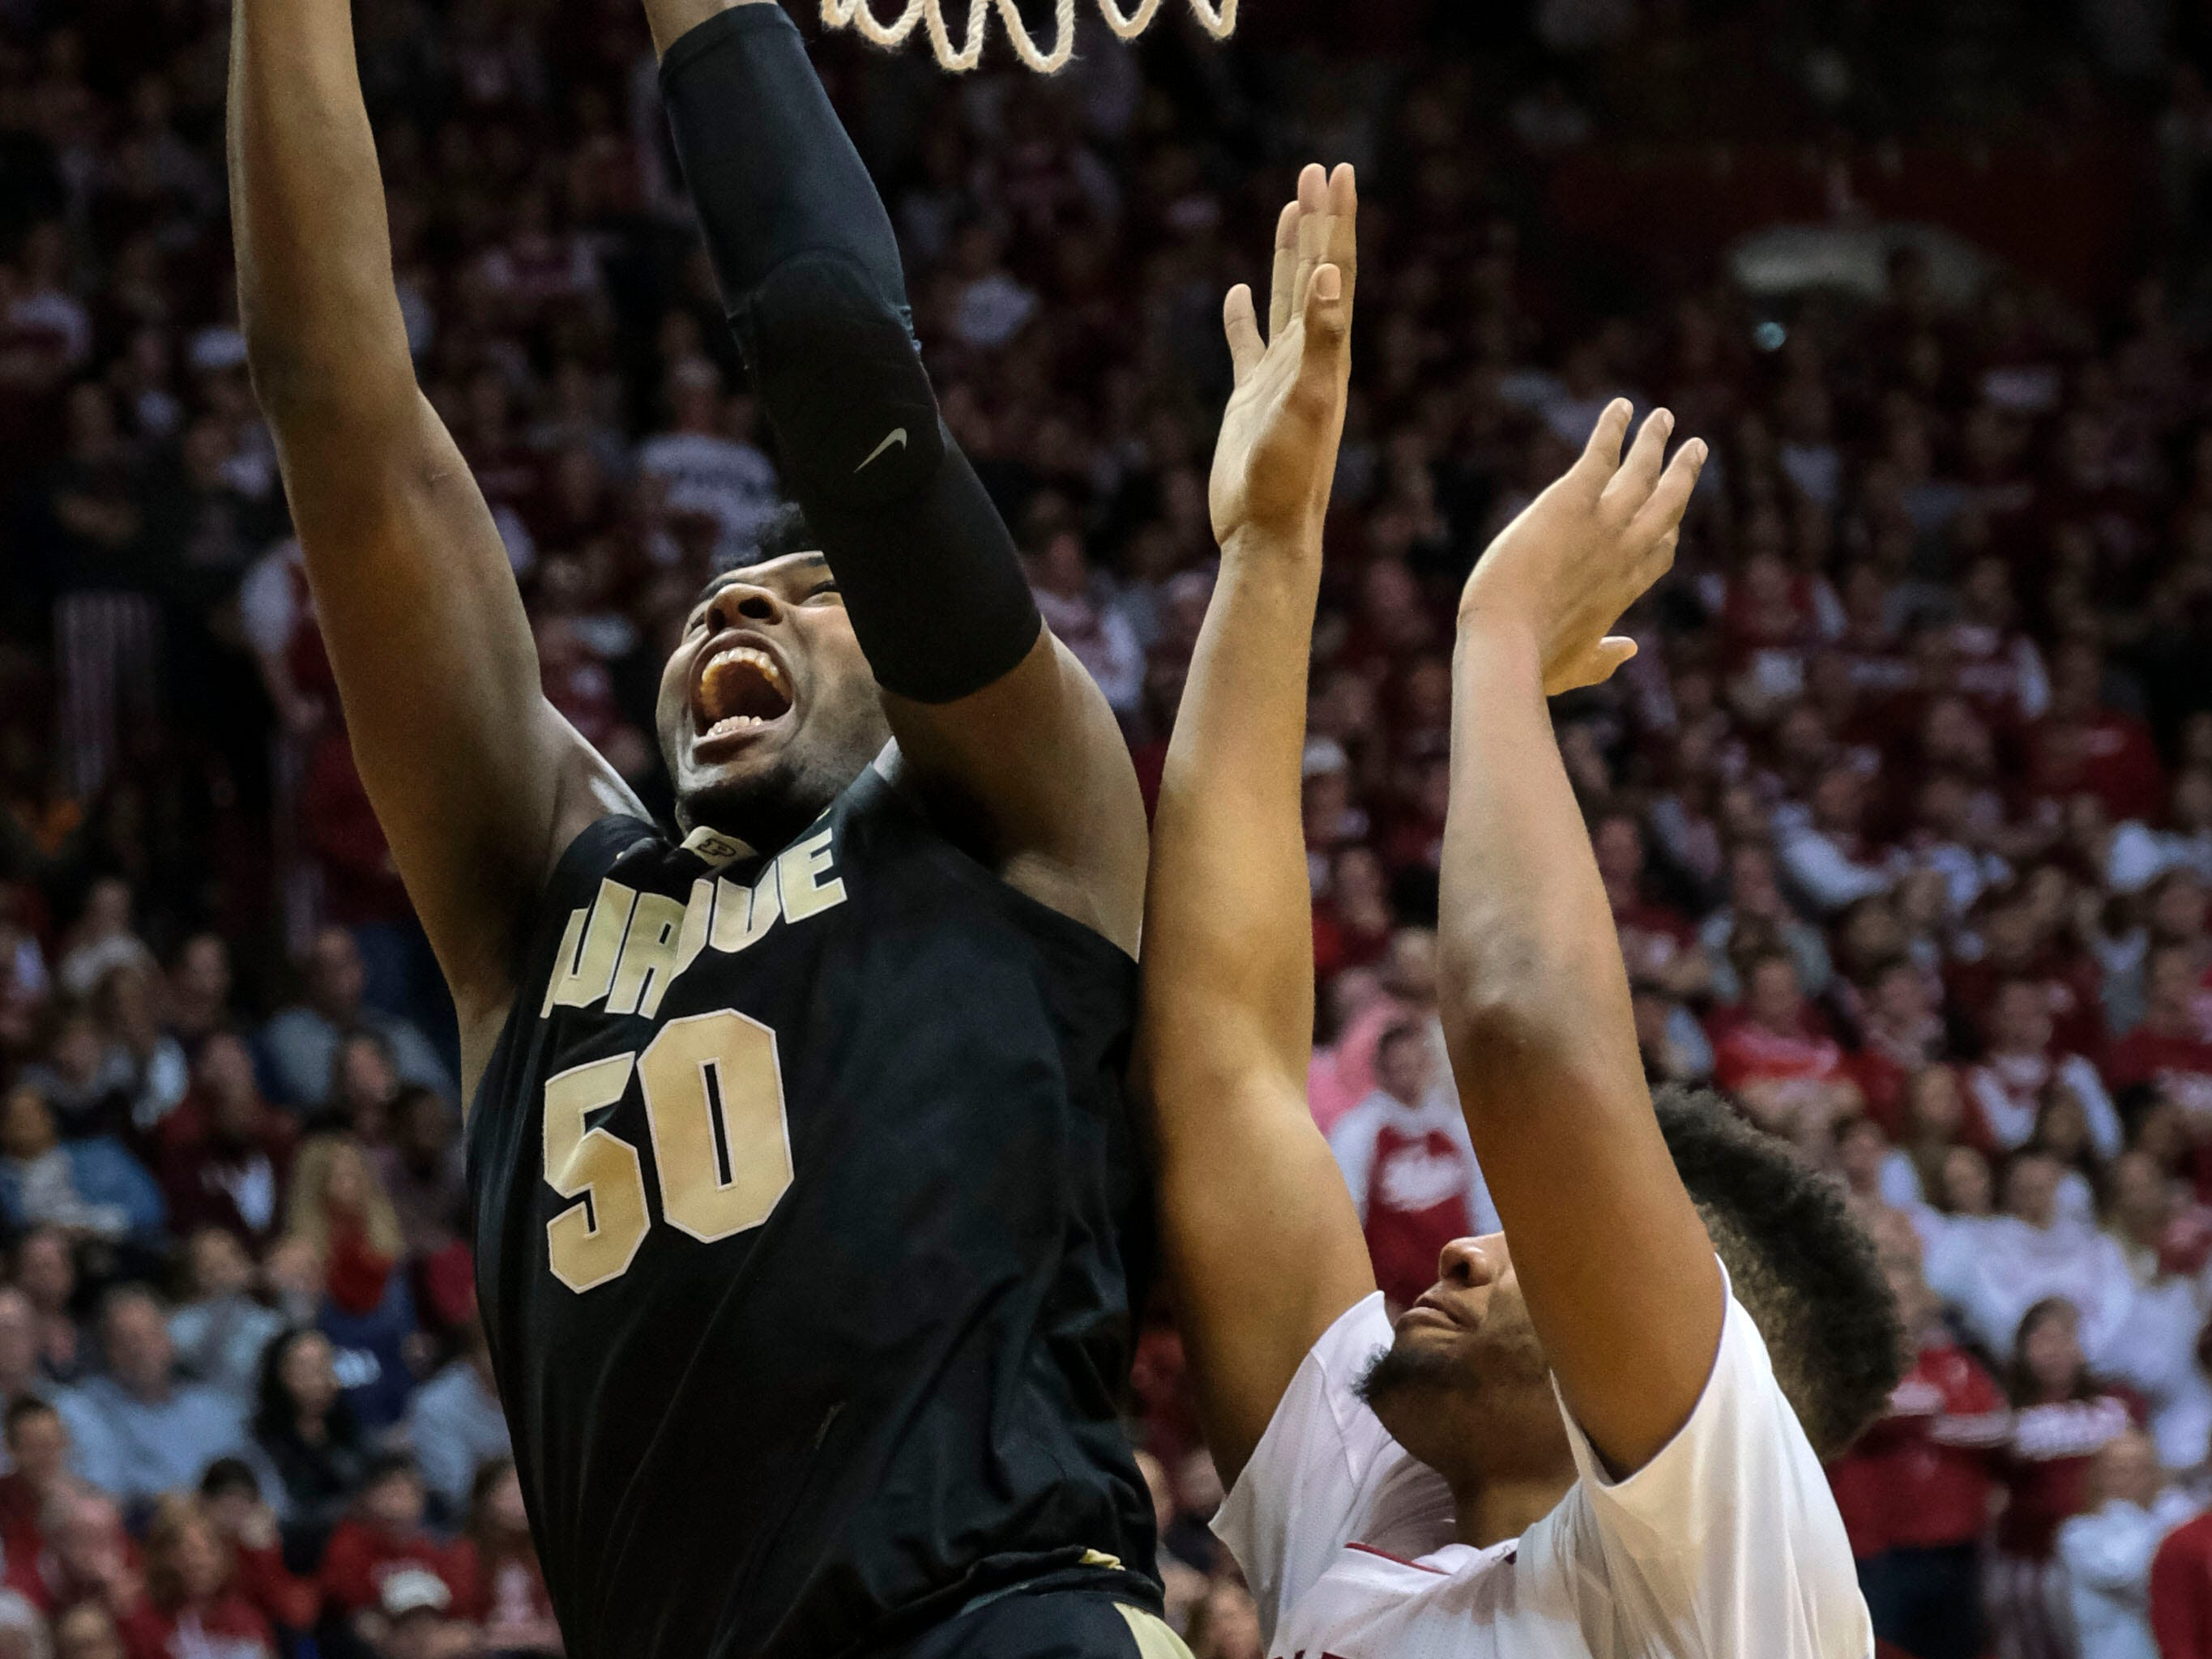 Purdue forward Trevion Williams (50) shoots next to Indiana forward Juwan Morgan during the first half of an NCAA college basketball game in Bloomington, Ind., Tuesday, Feb. 19, 2019.